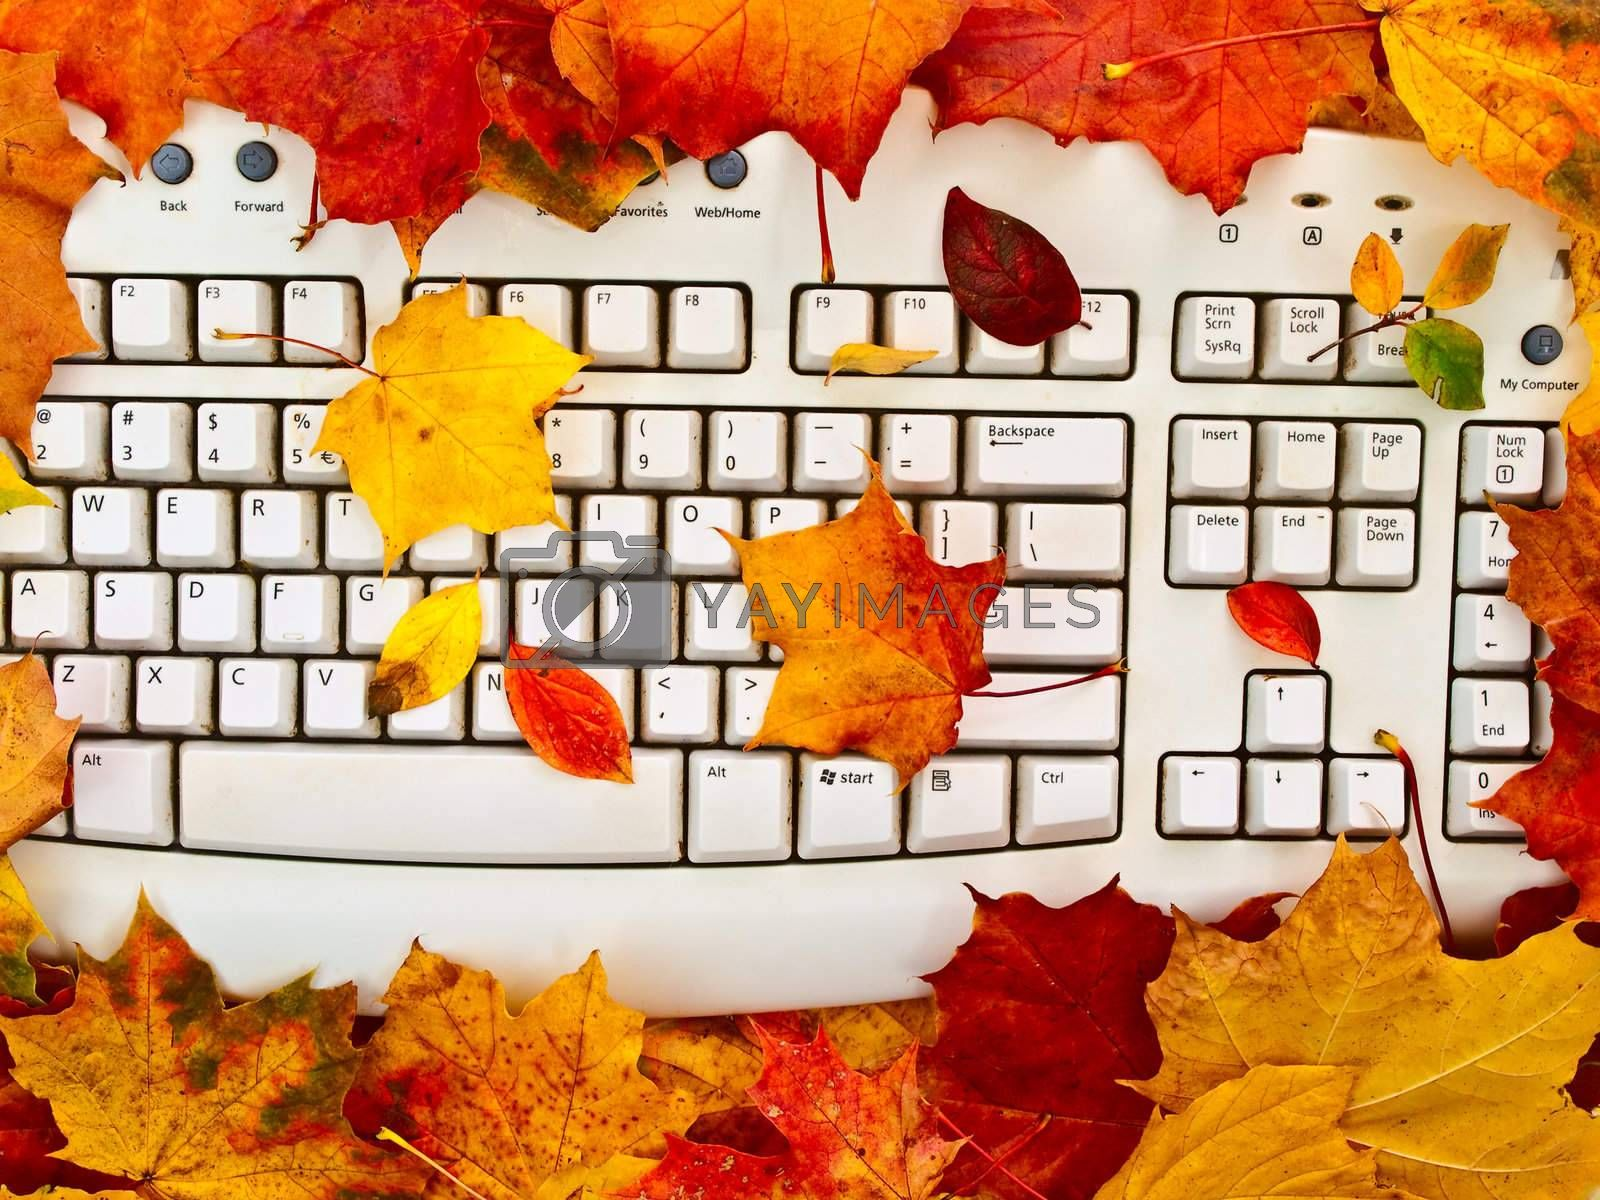 Photo of the keyboard in the bright autumn leaves